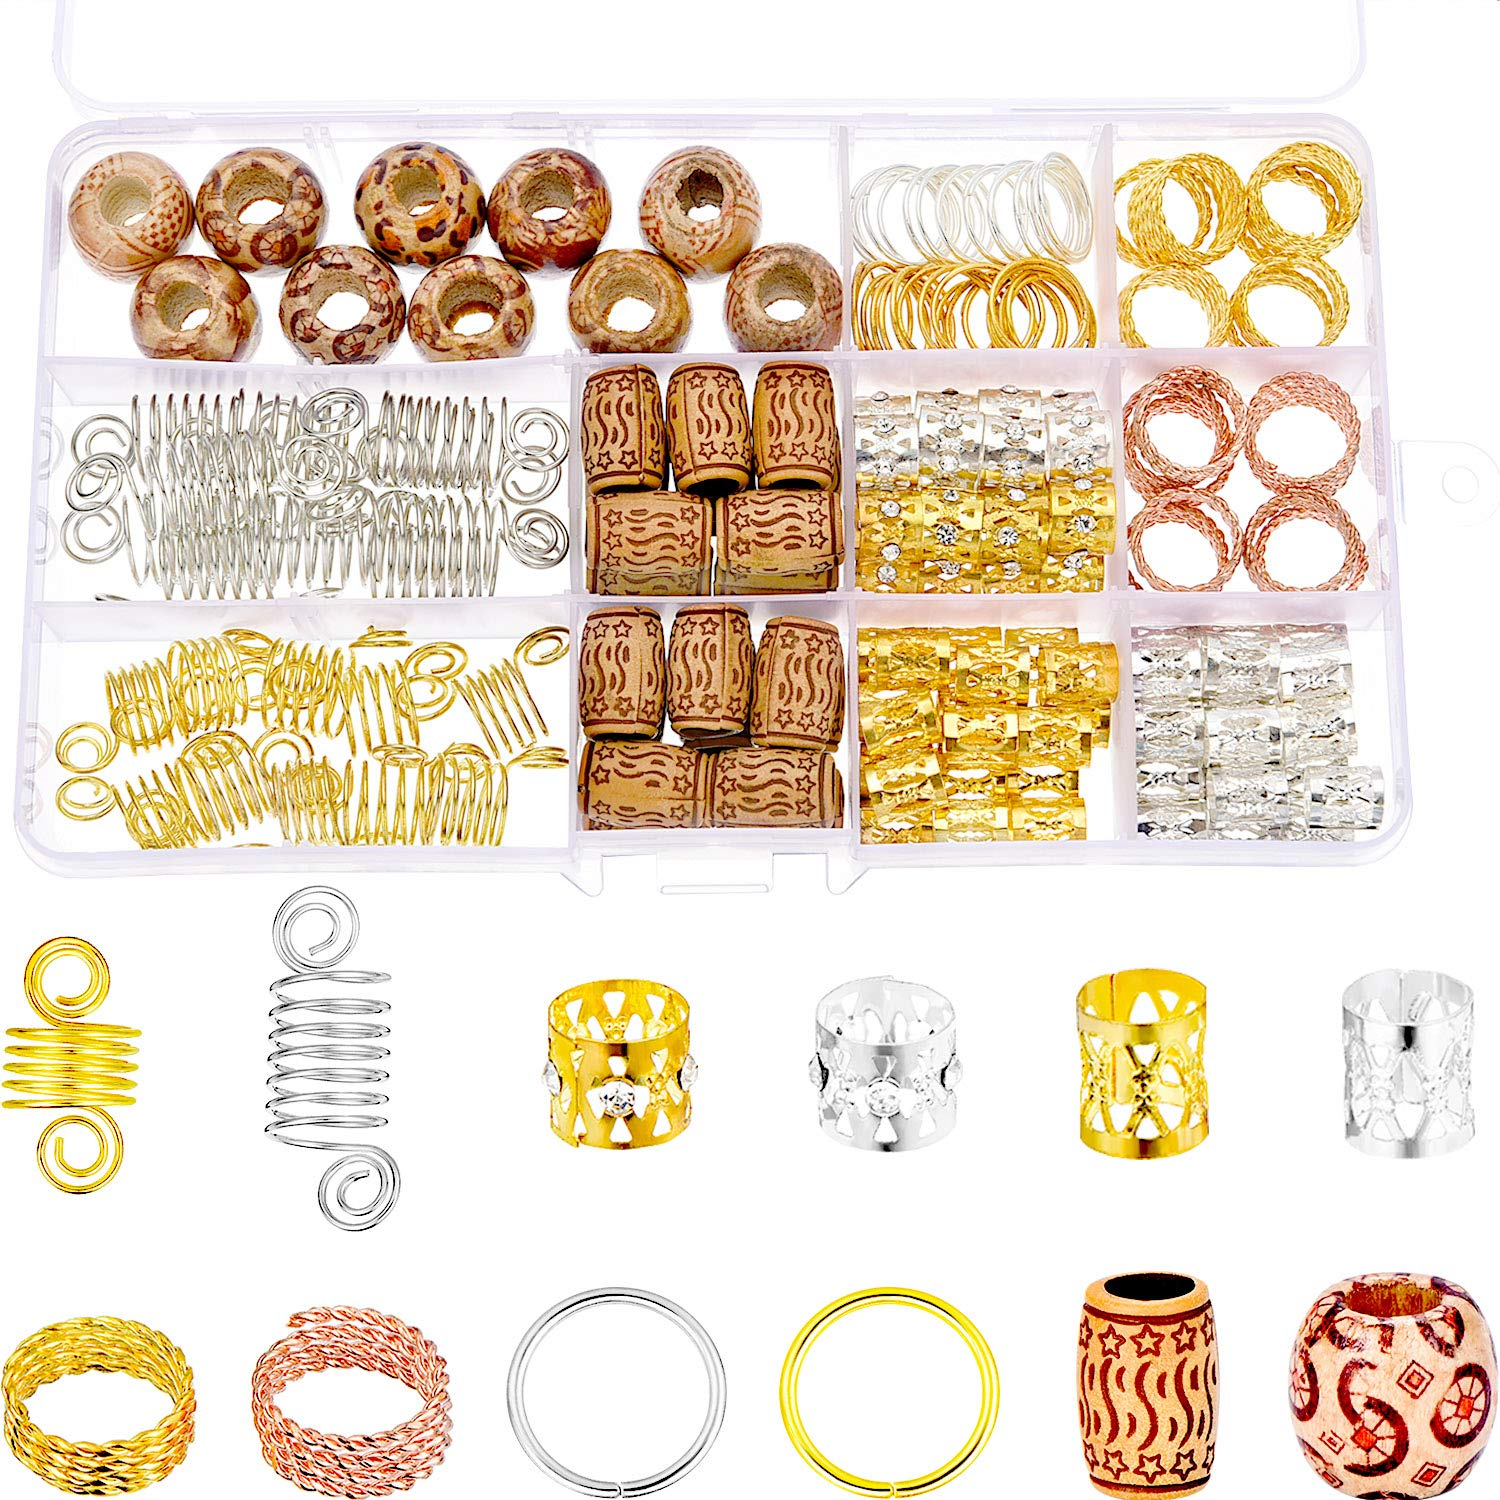 TecUnite 170 Pieces Aluminum Dreadlocks Beads Metal Cuffs Hair Wraps Natural Painted Wood Beads Hair Braiding Beads Jewelry Hair Decoration Accessories with Storage Box